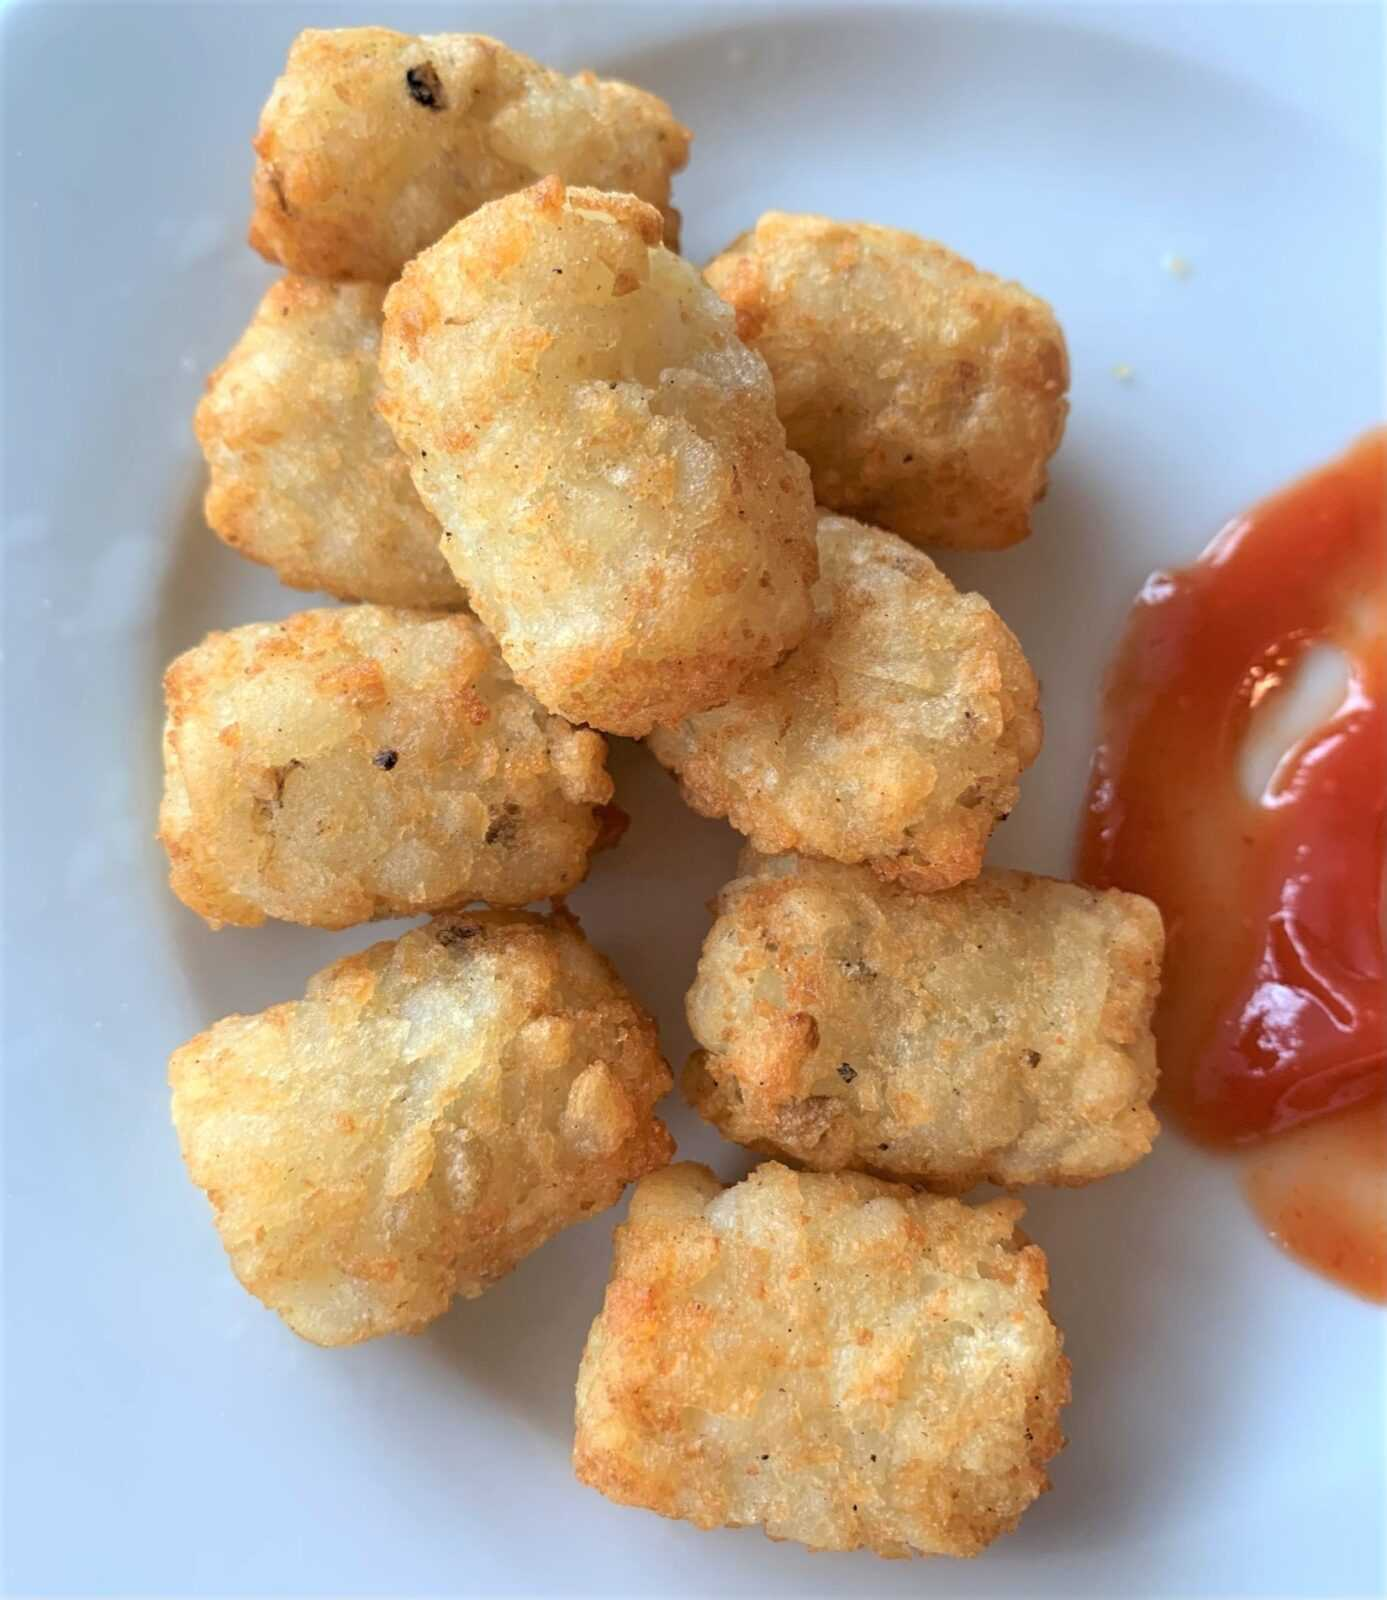 crispy golden air fried tater tots on a plate with ketchup